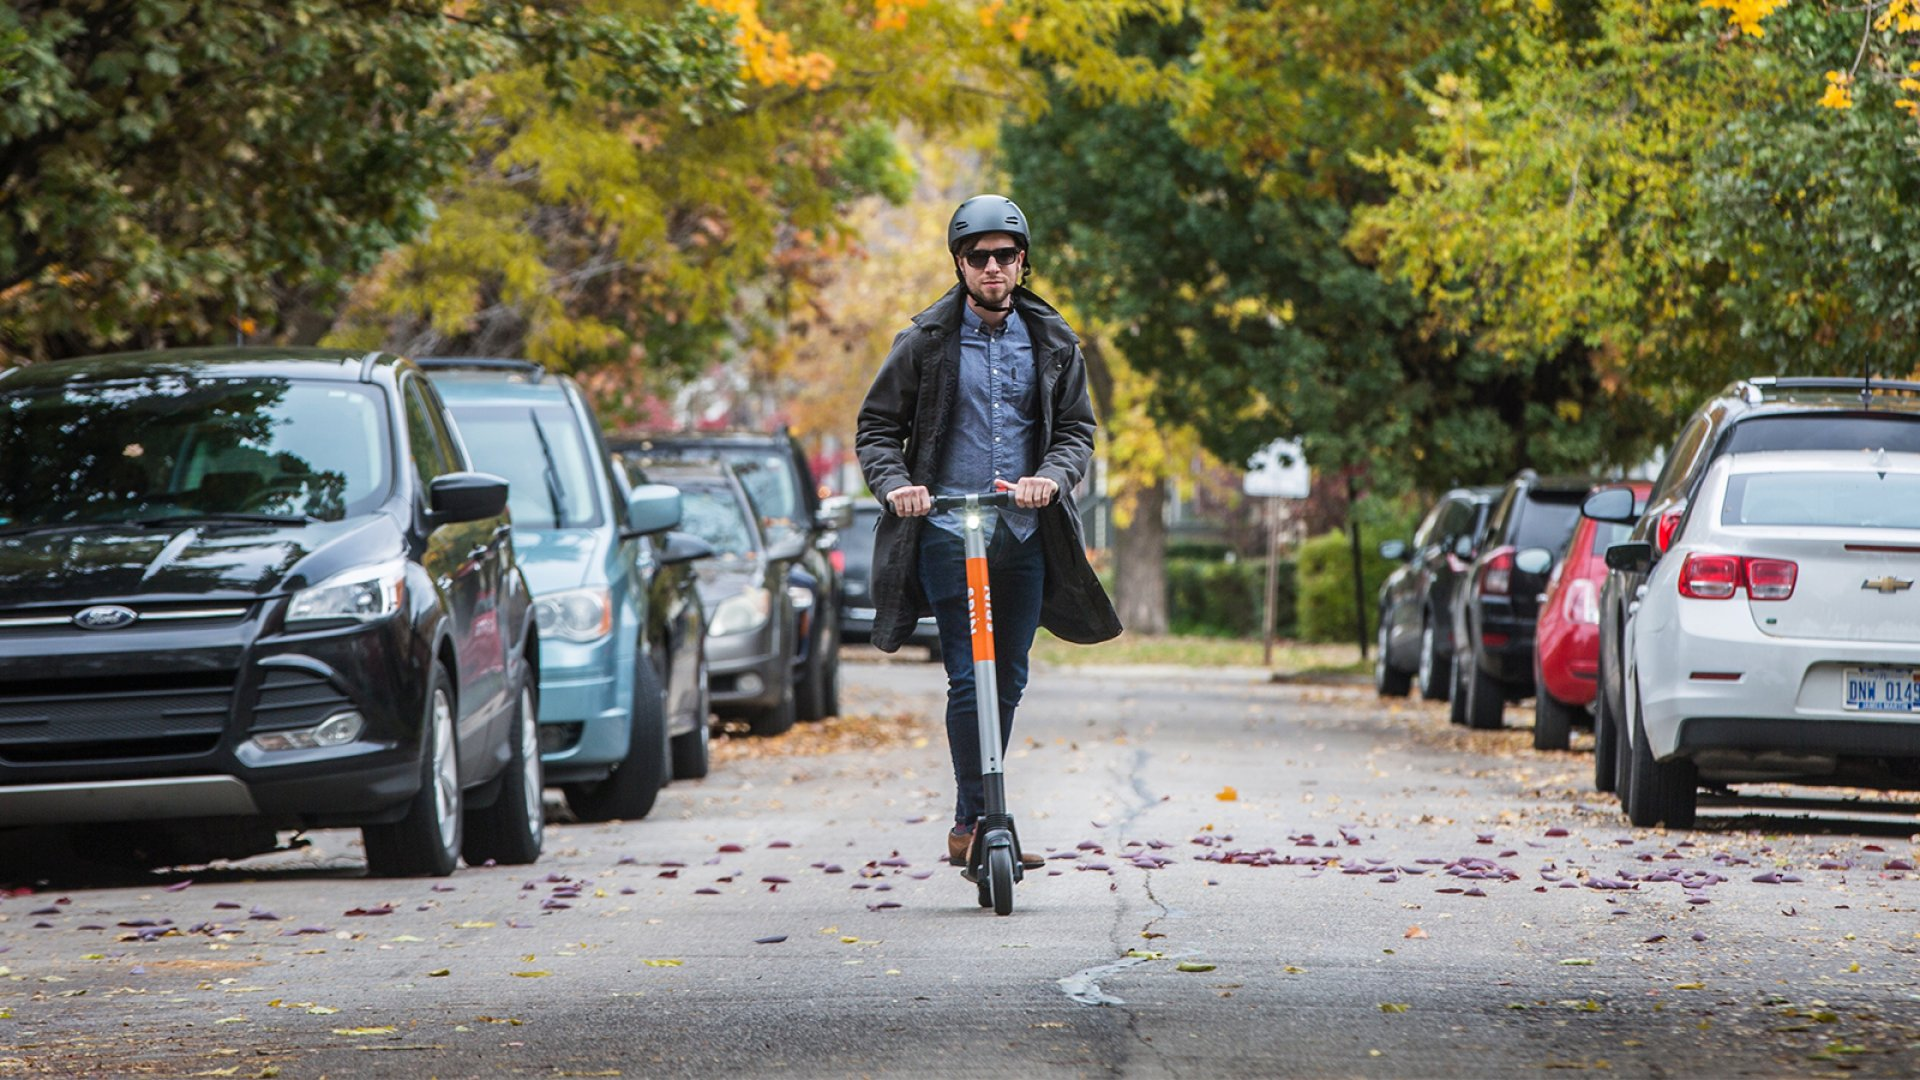 Spin, E-Scooter Startup Born of a 2016 Trip to China, Sells to Ford in Multimillion-Dollar Deal